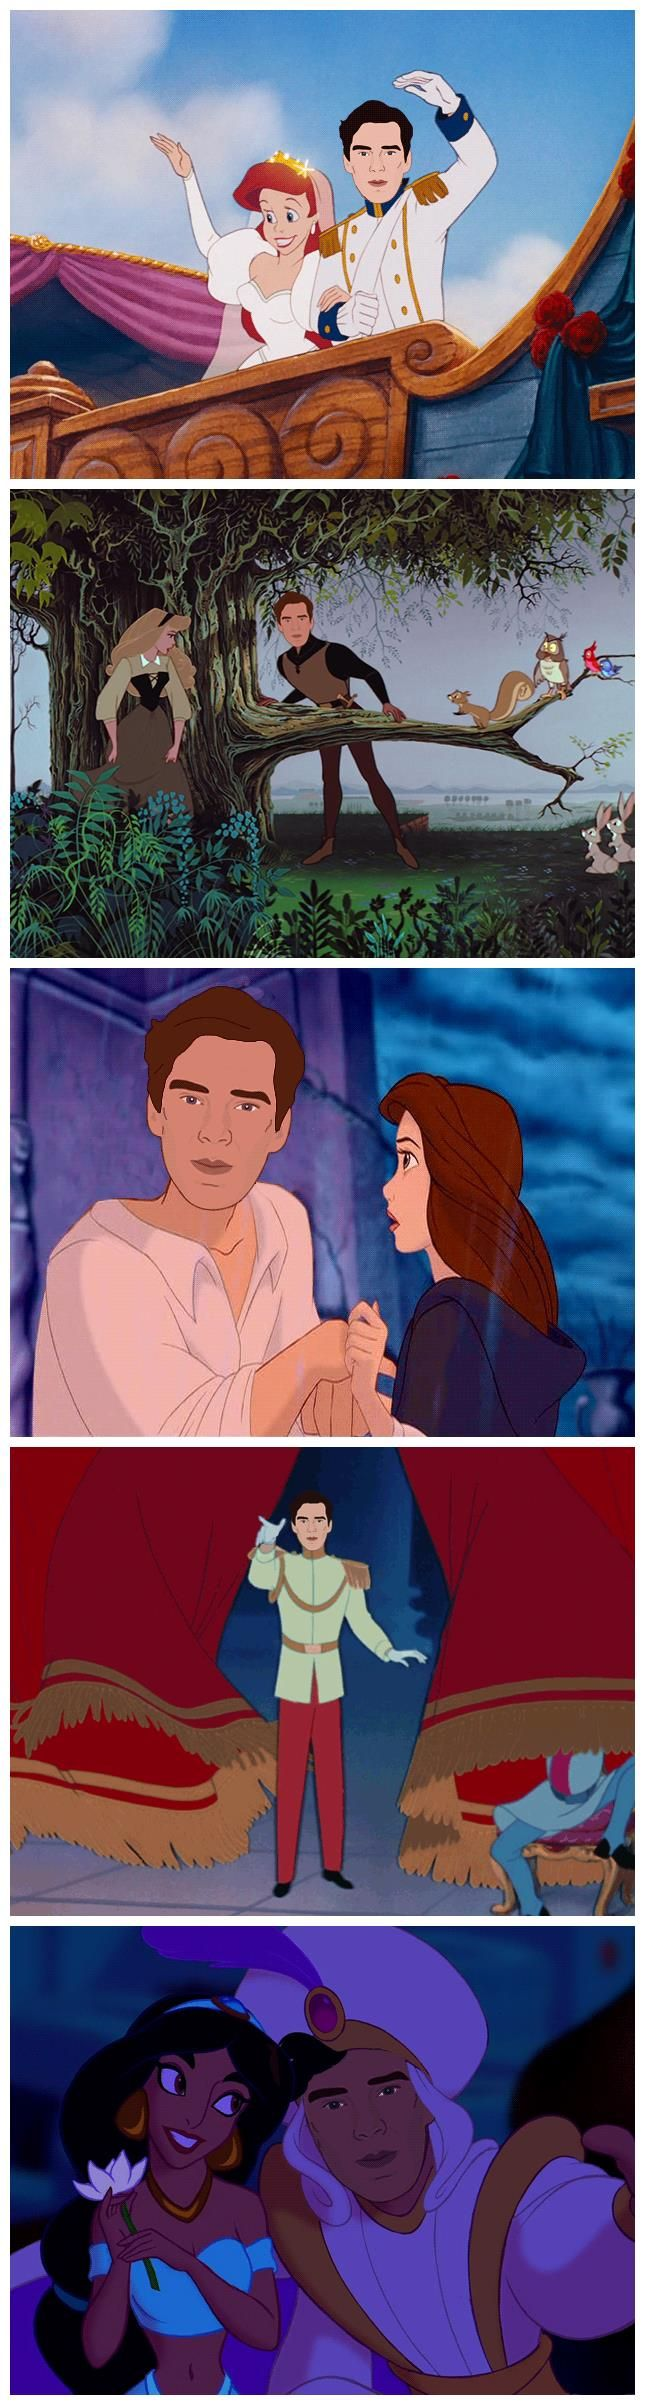 Benedict Cumberbatch As Disney Princes. I don't know if the fandom will make it until January.